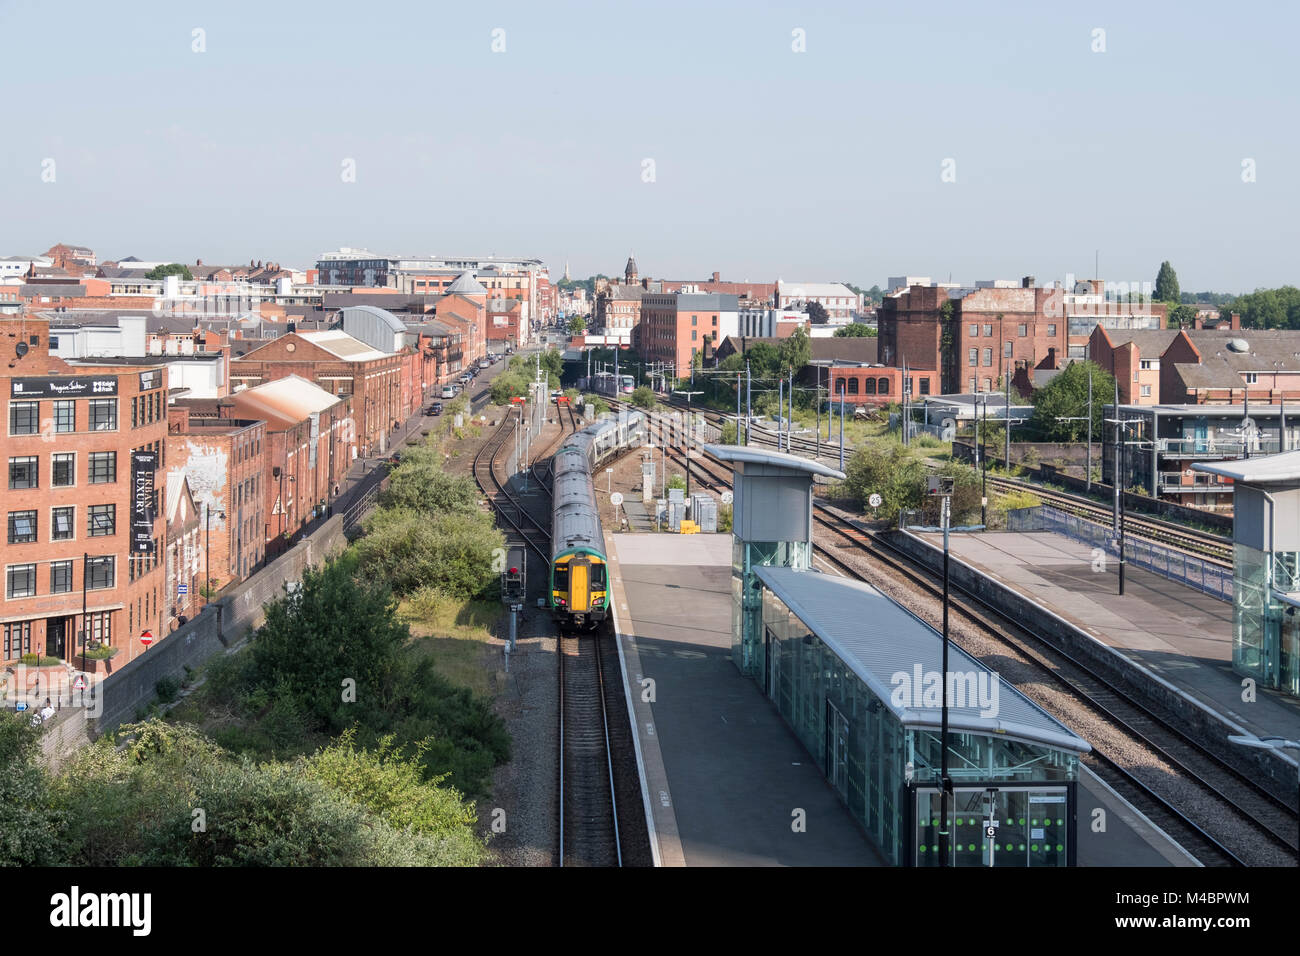 A train approaching Snow Hill train station, Birmingham Stock Photo